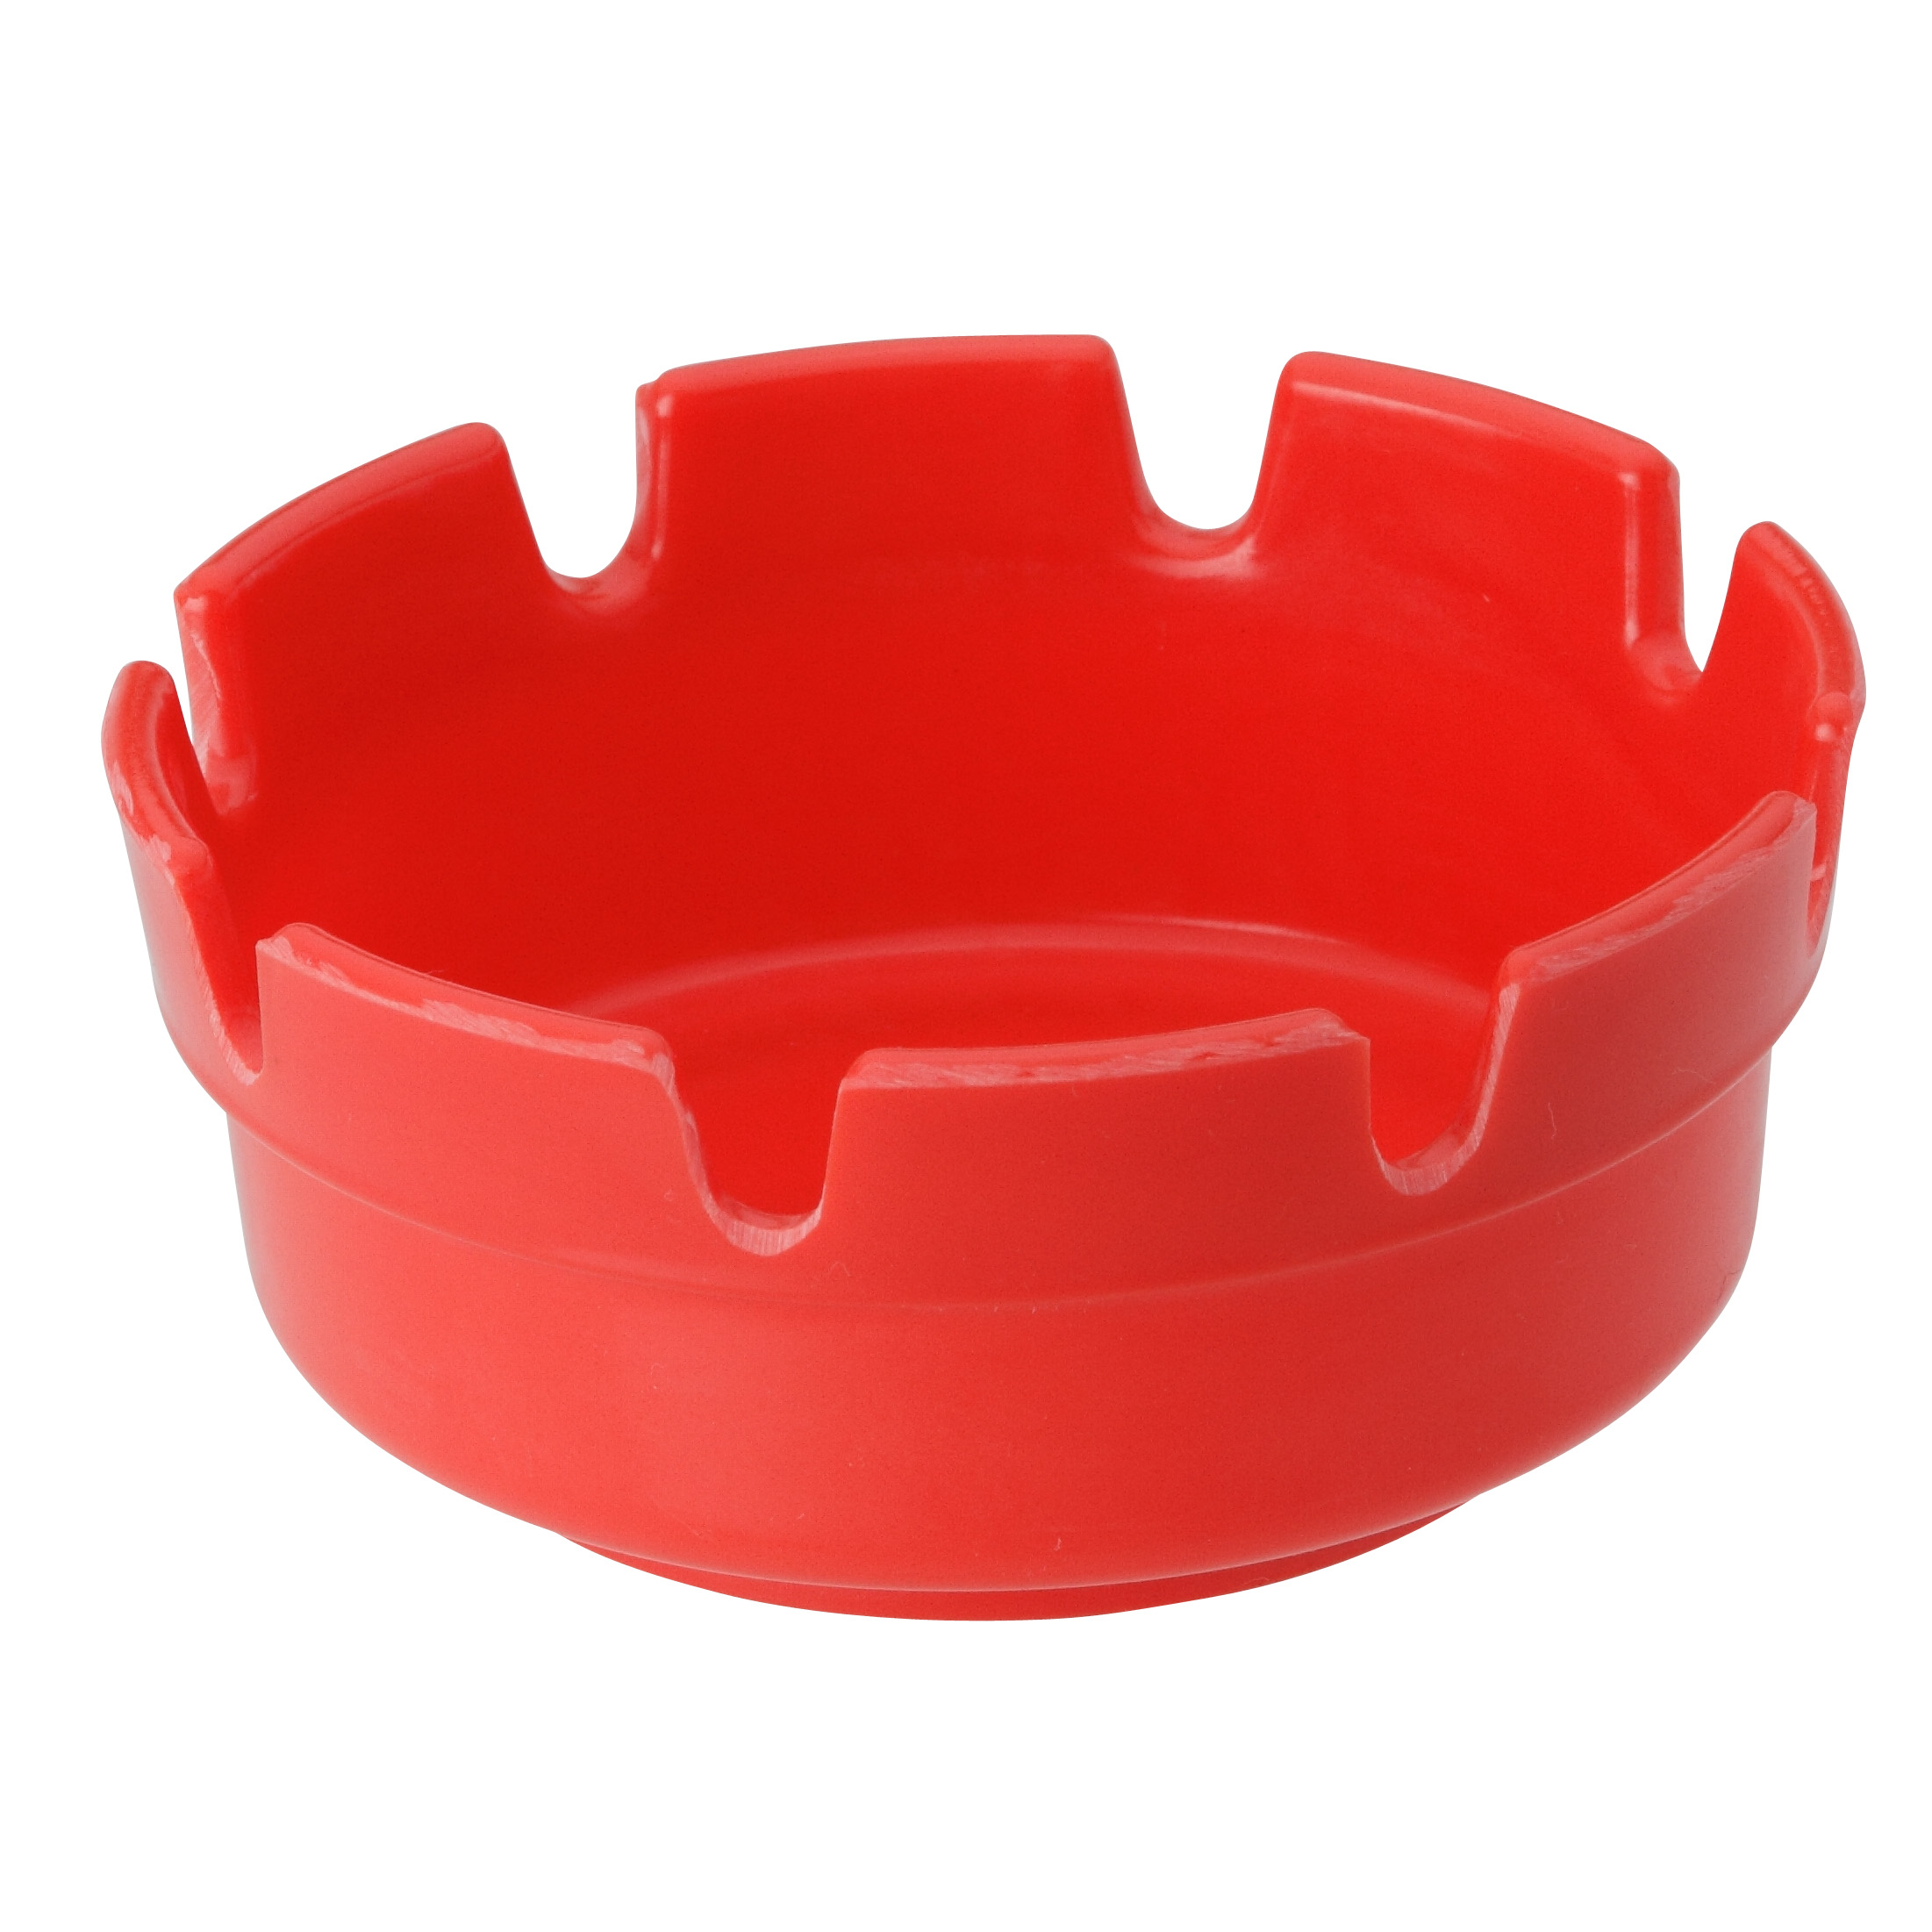 Royal Industries ROY ASH 263 RED ash tray, plastic